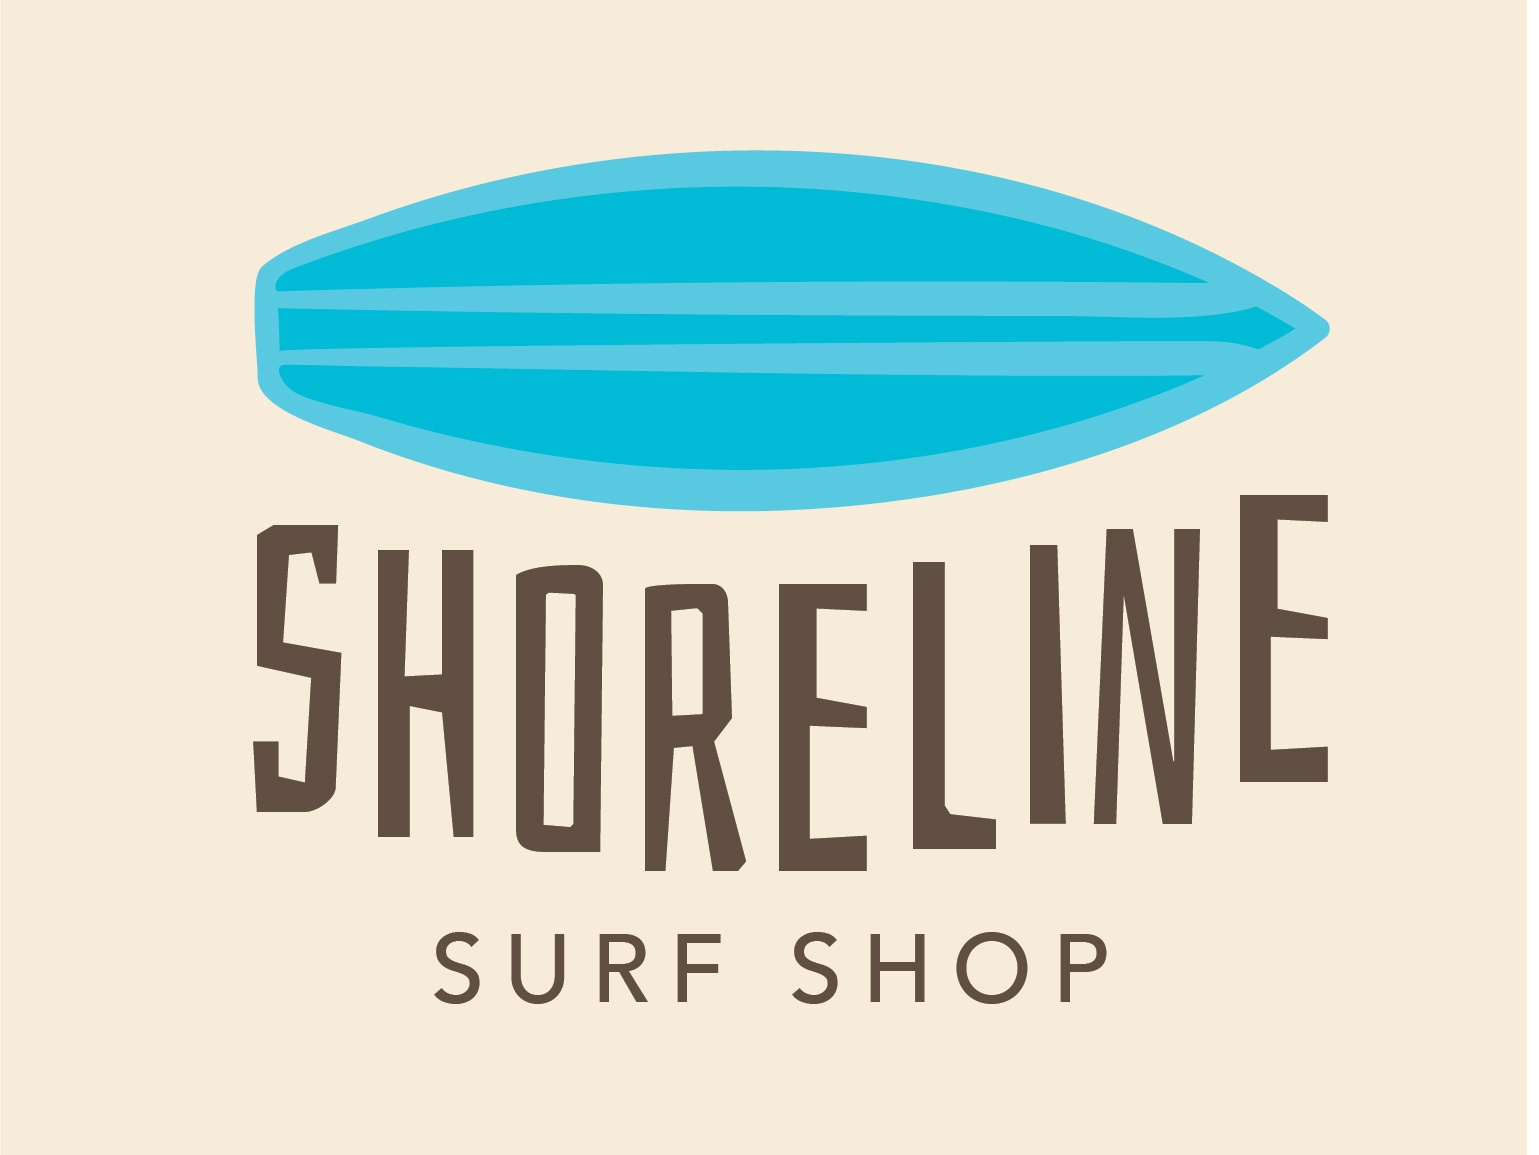 shoreline surf shop vector visual branding visual identity branding graphic  design student project typography logo illustration